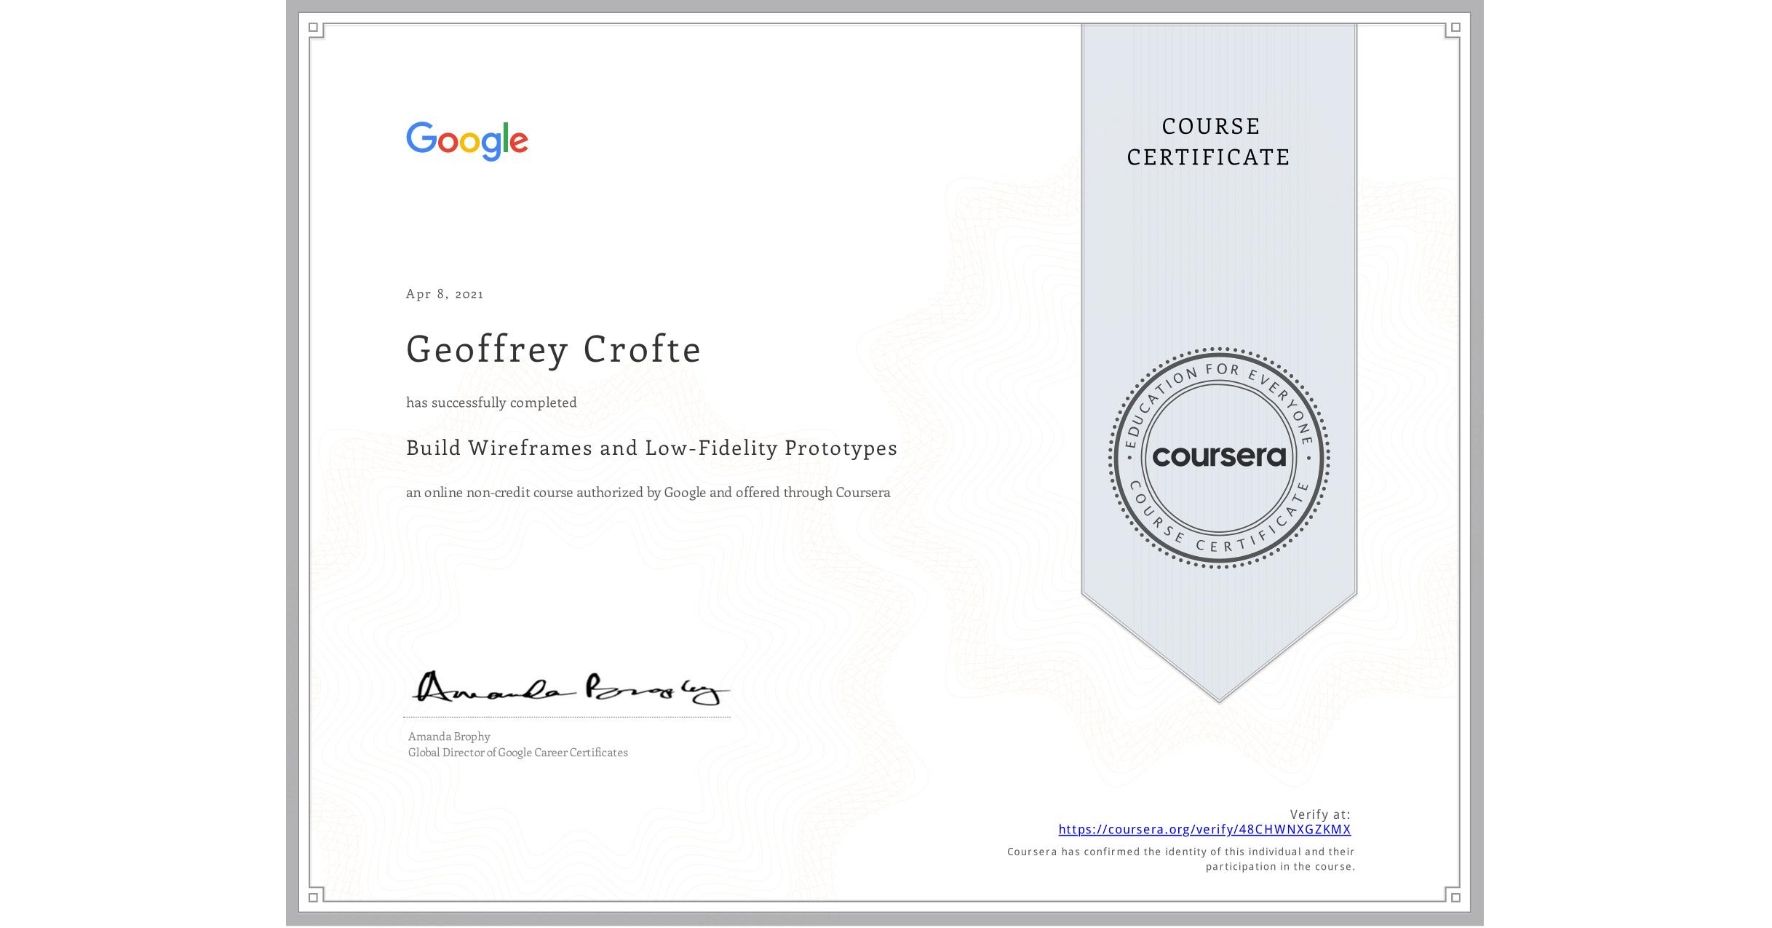 View certificate for Geoffrey Crofte, Build Wireframes and Low-Fidelity Prototypes, an online non-credit course authorized by Google and offered through Coursera